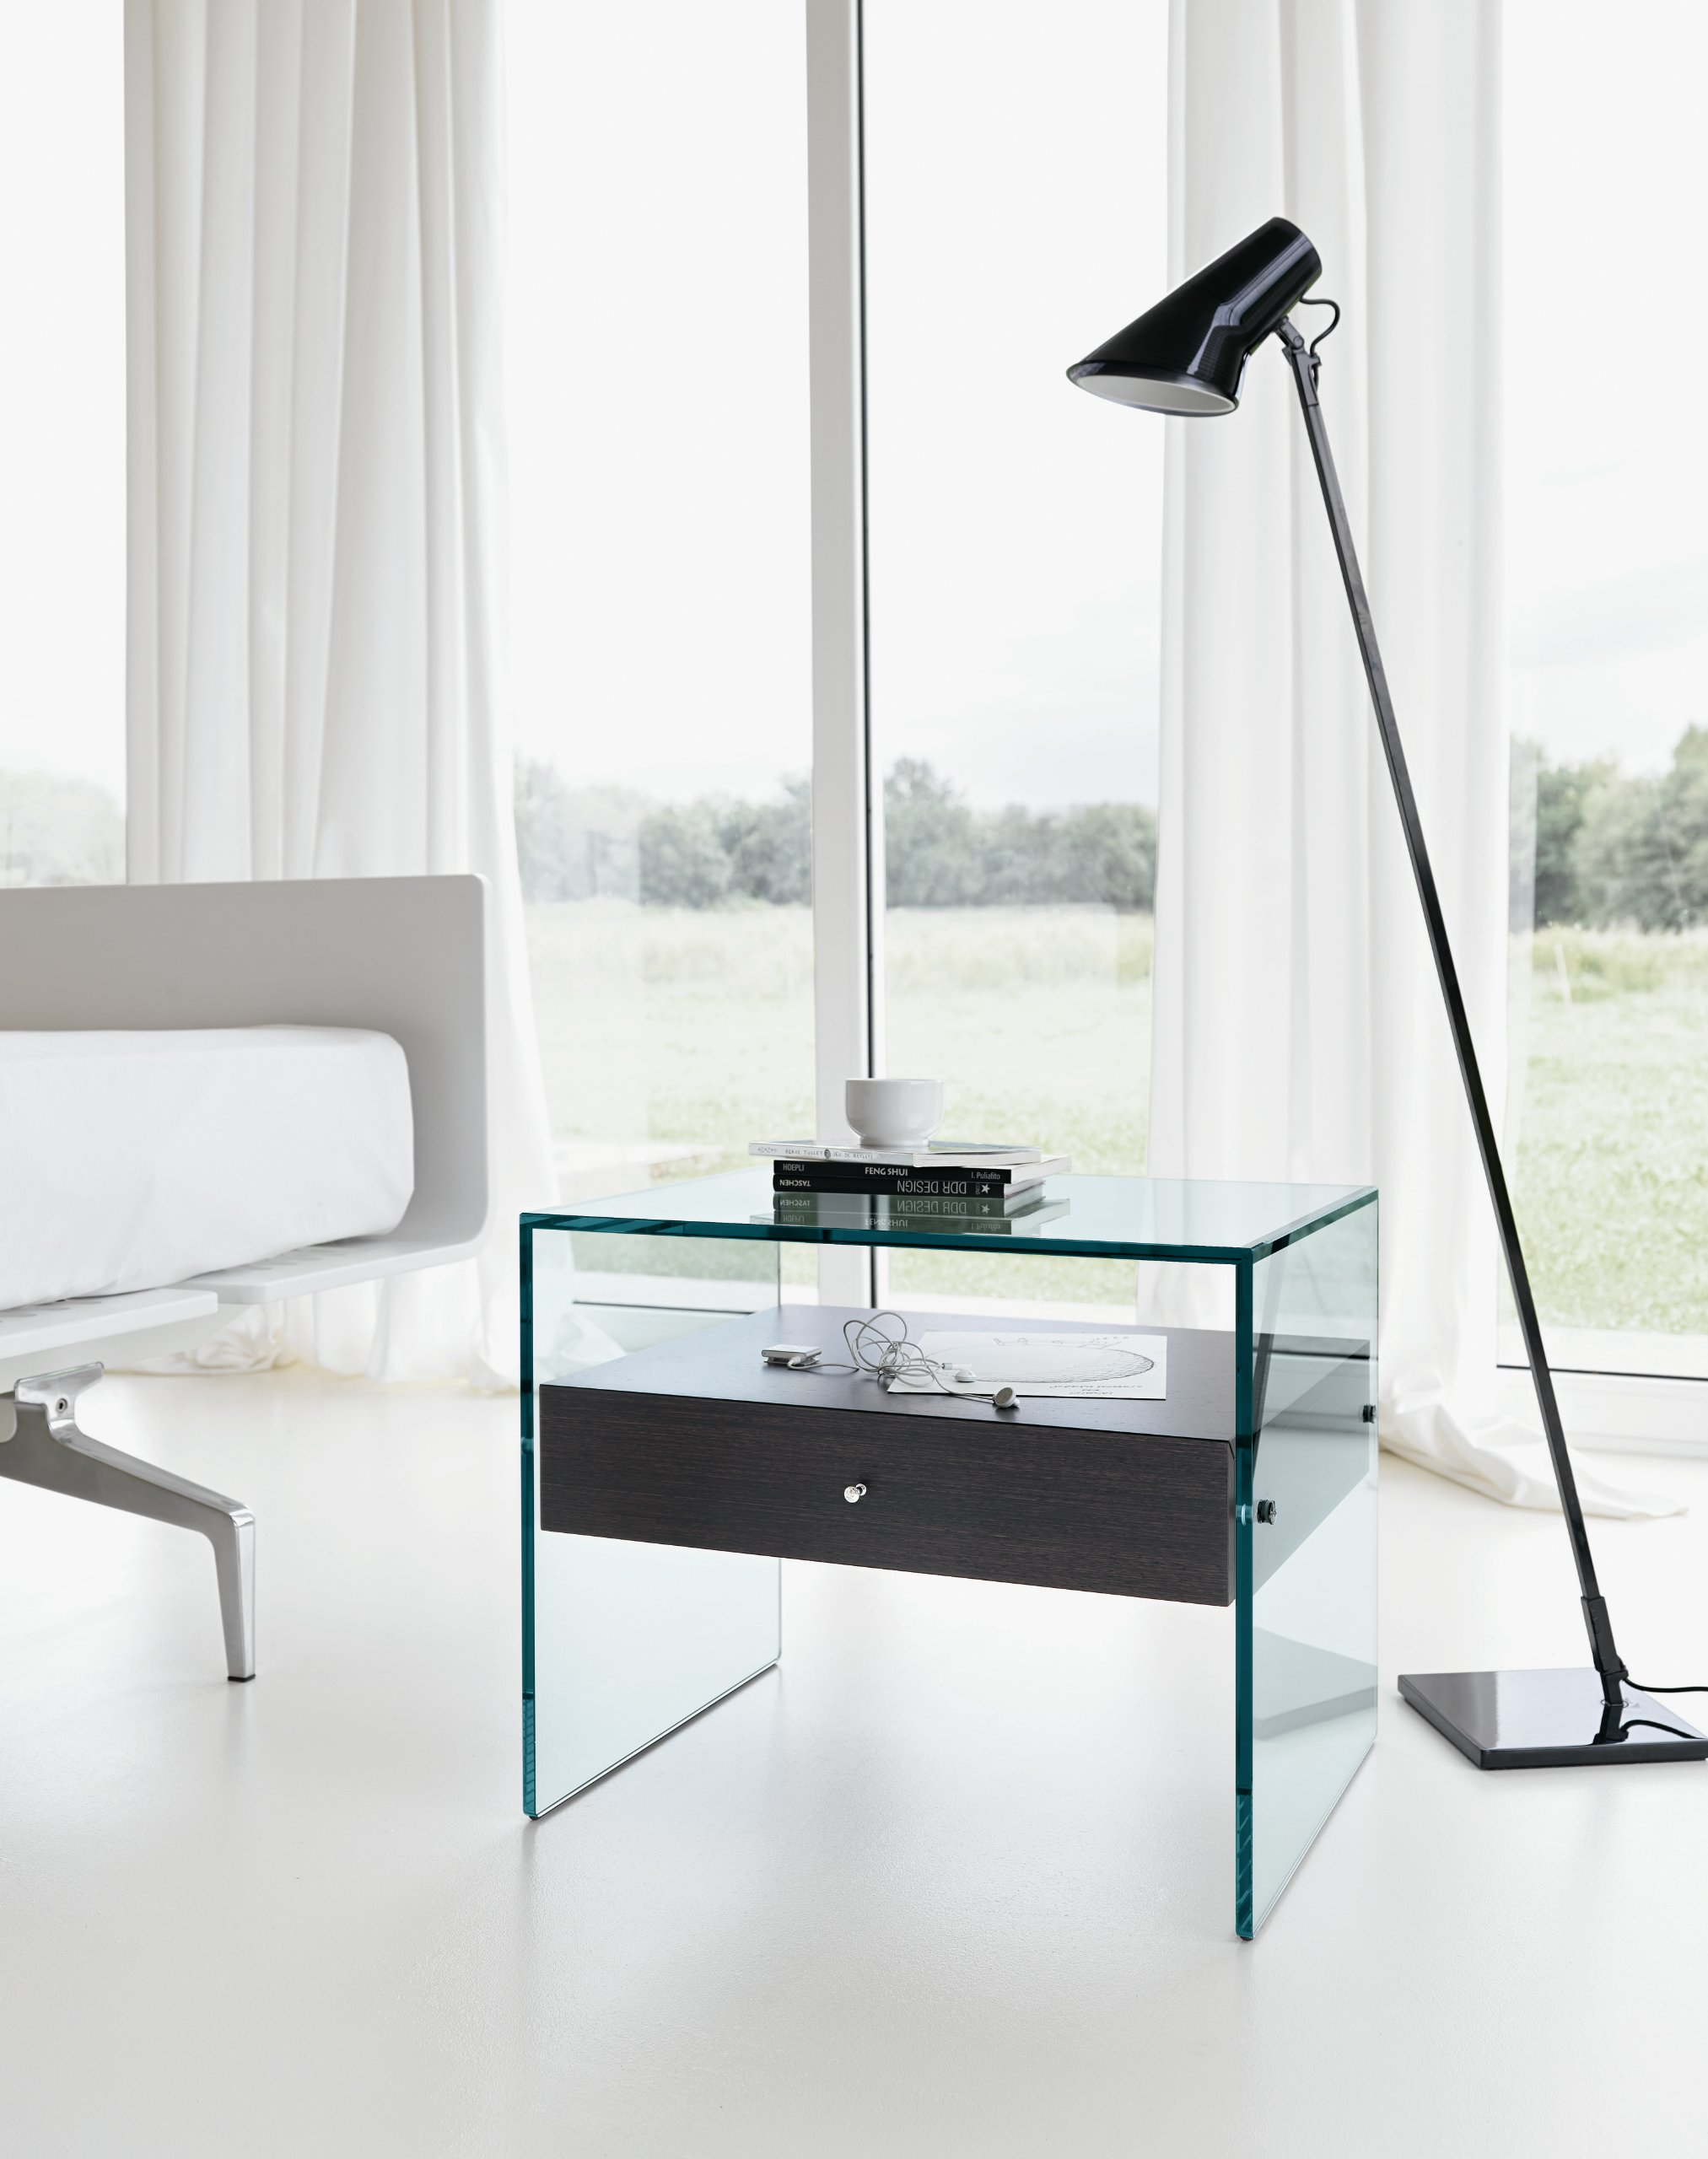 Glass bedside table secret by t d tonelli design - Table de chevet en verre ...